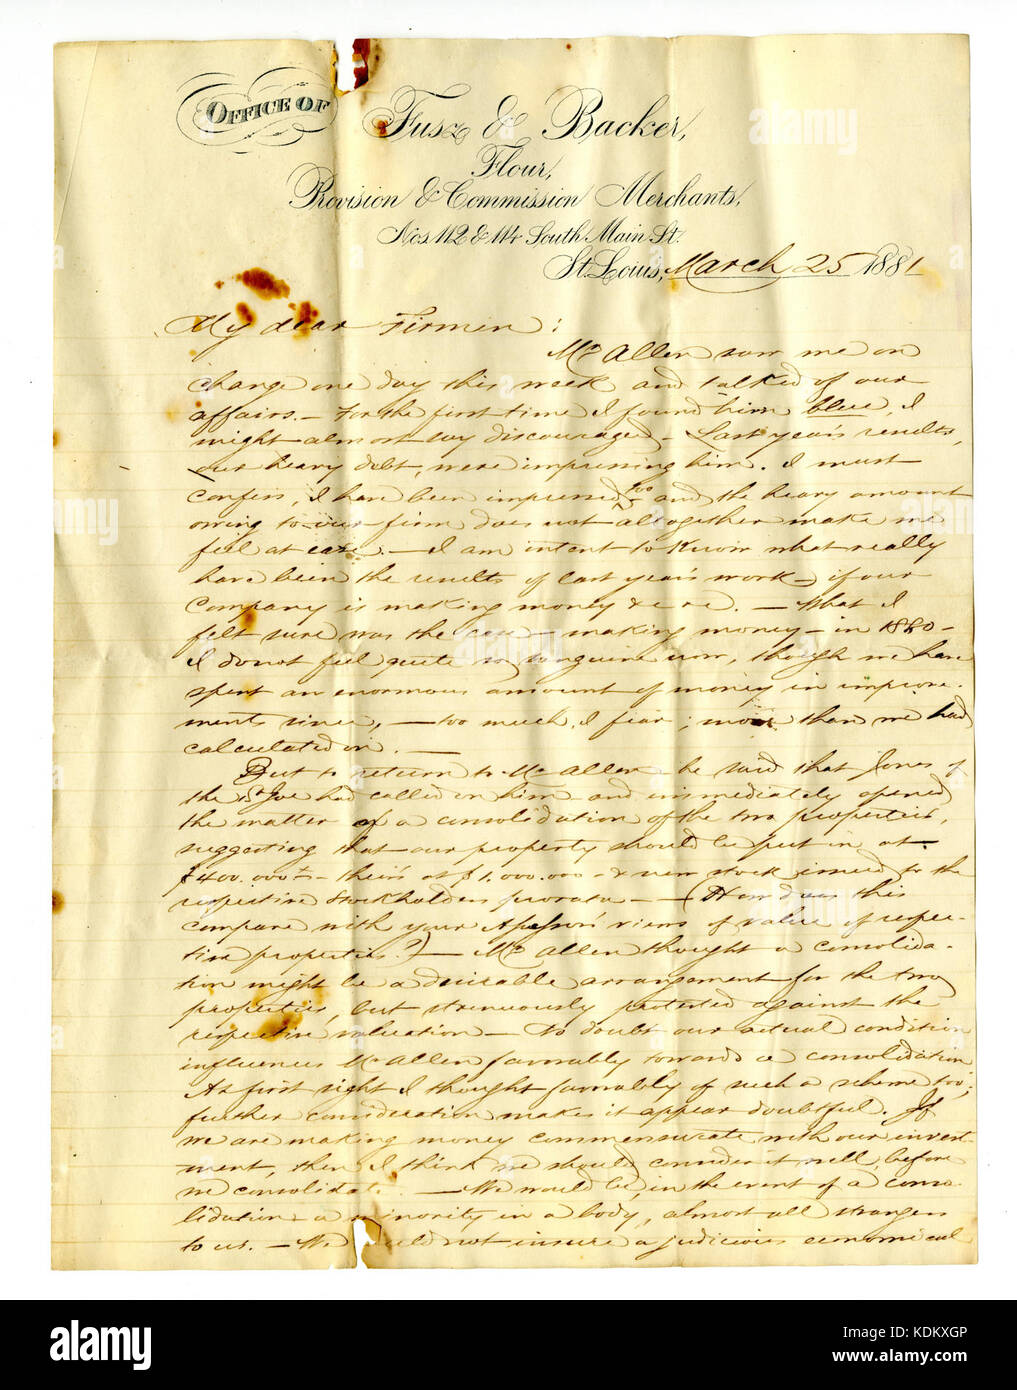 Letter signed Louis Fusz, Fusz and Backer, Flour, Provision and Commission Merchants, March 25, 1881 - Stock Image